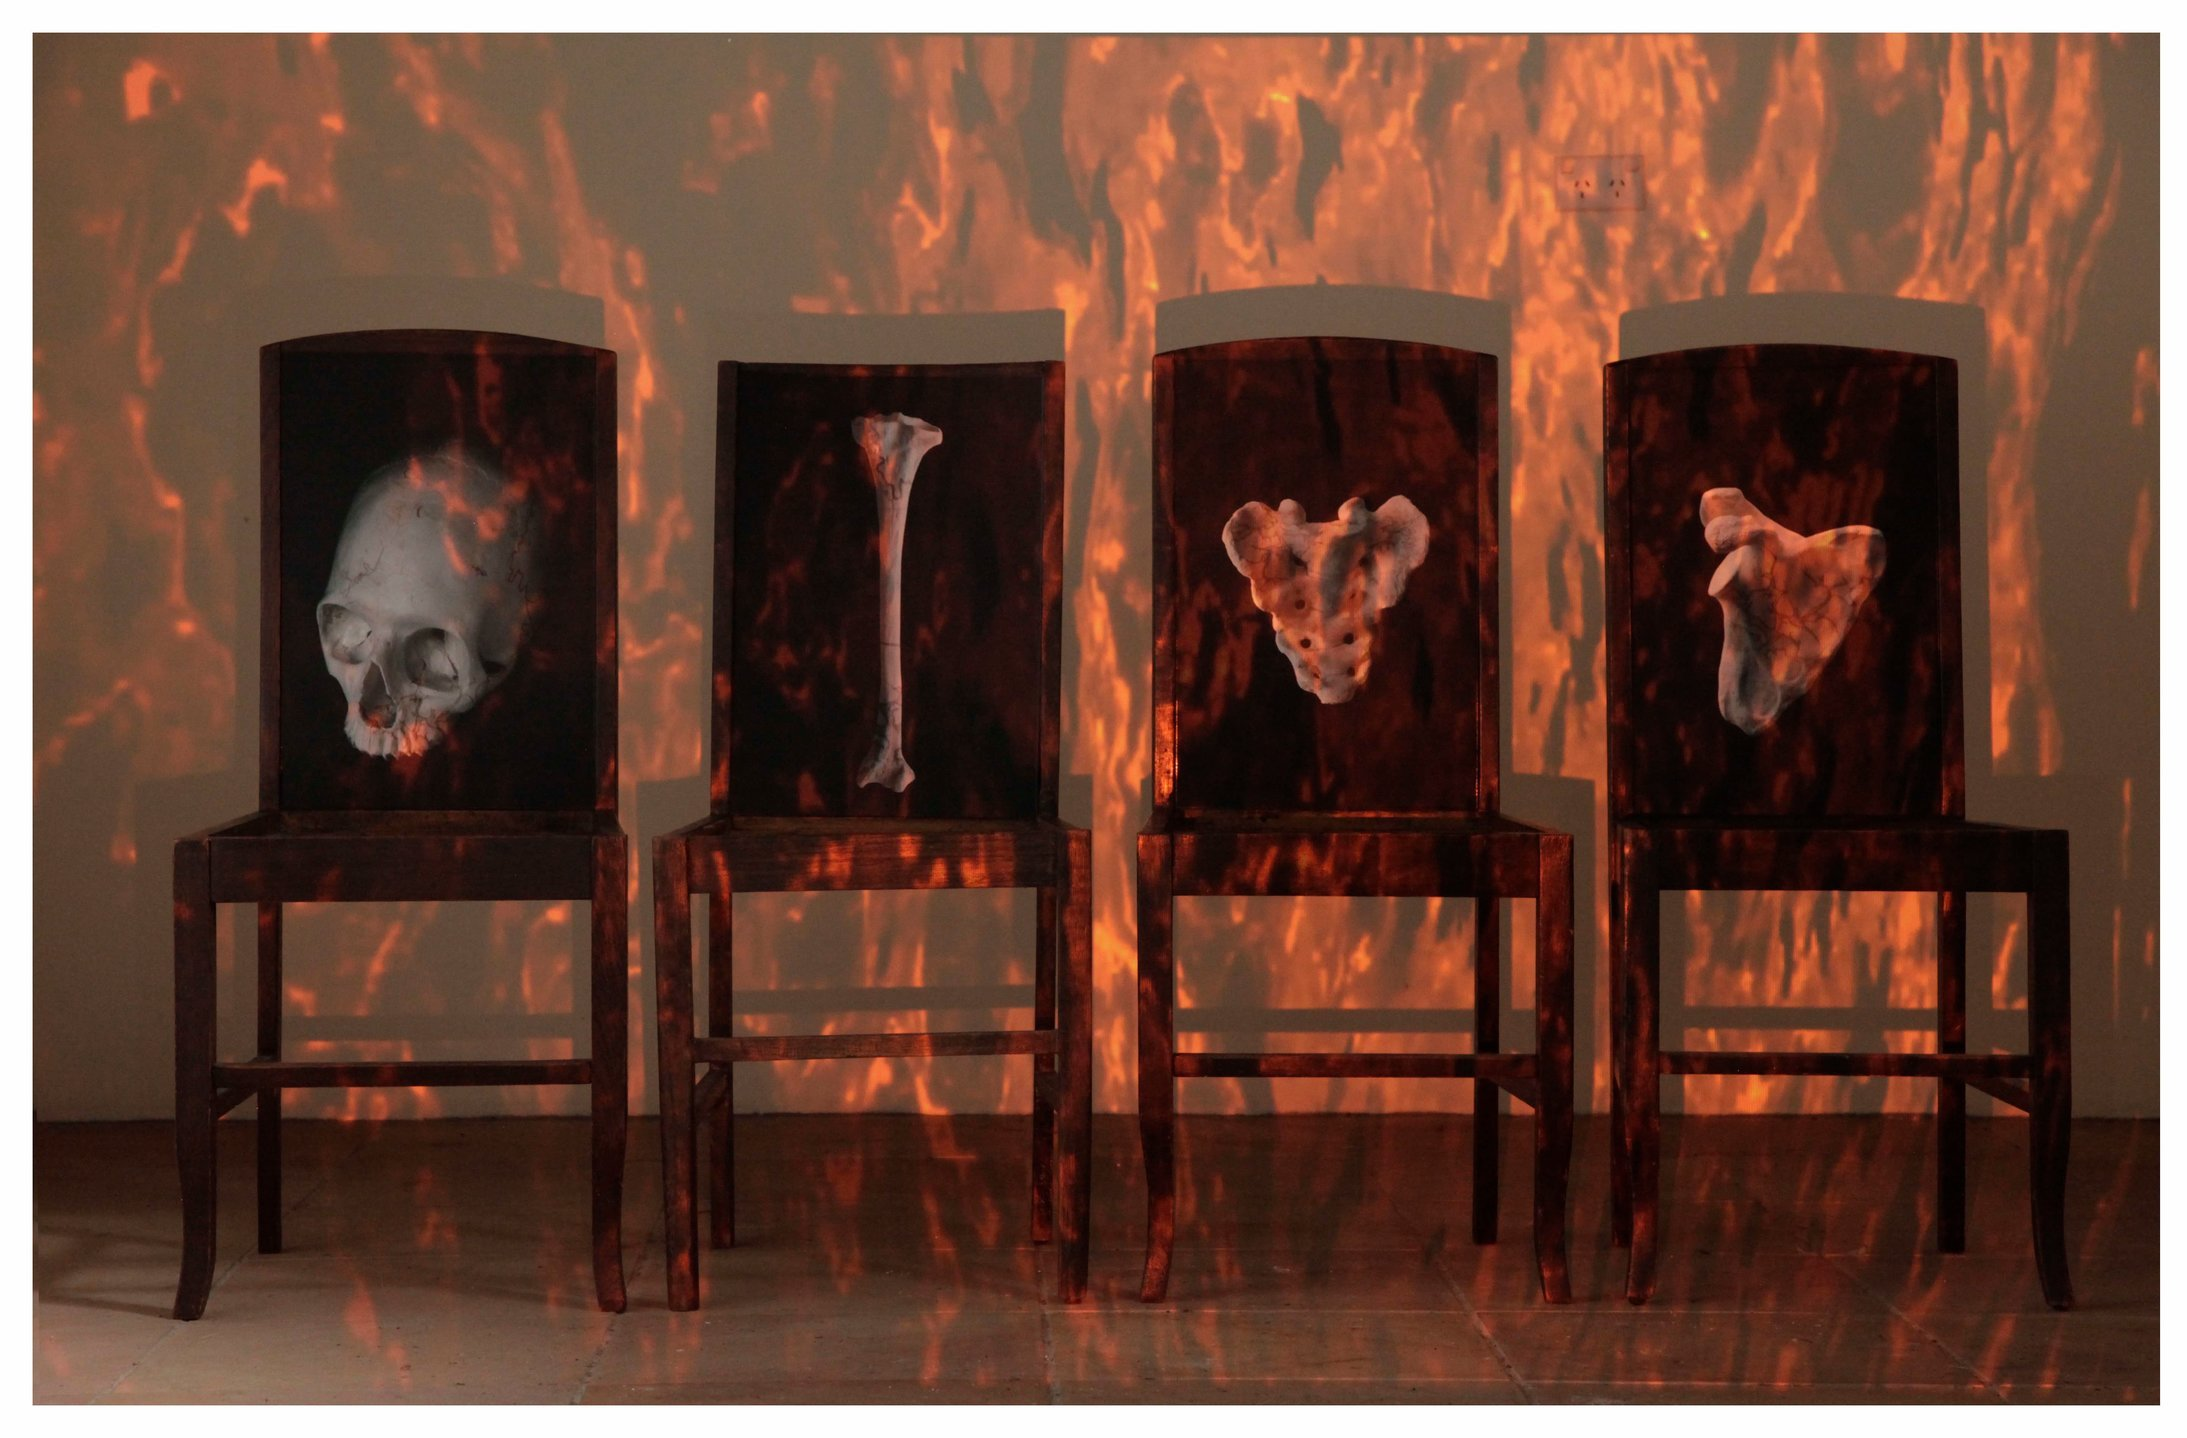 Jenny Pollak - Days of Reckoning 2016 (still) sculptural installation with projection - wooden chairs, photographs, projection .jpg